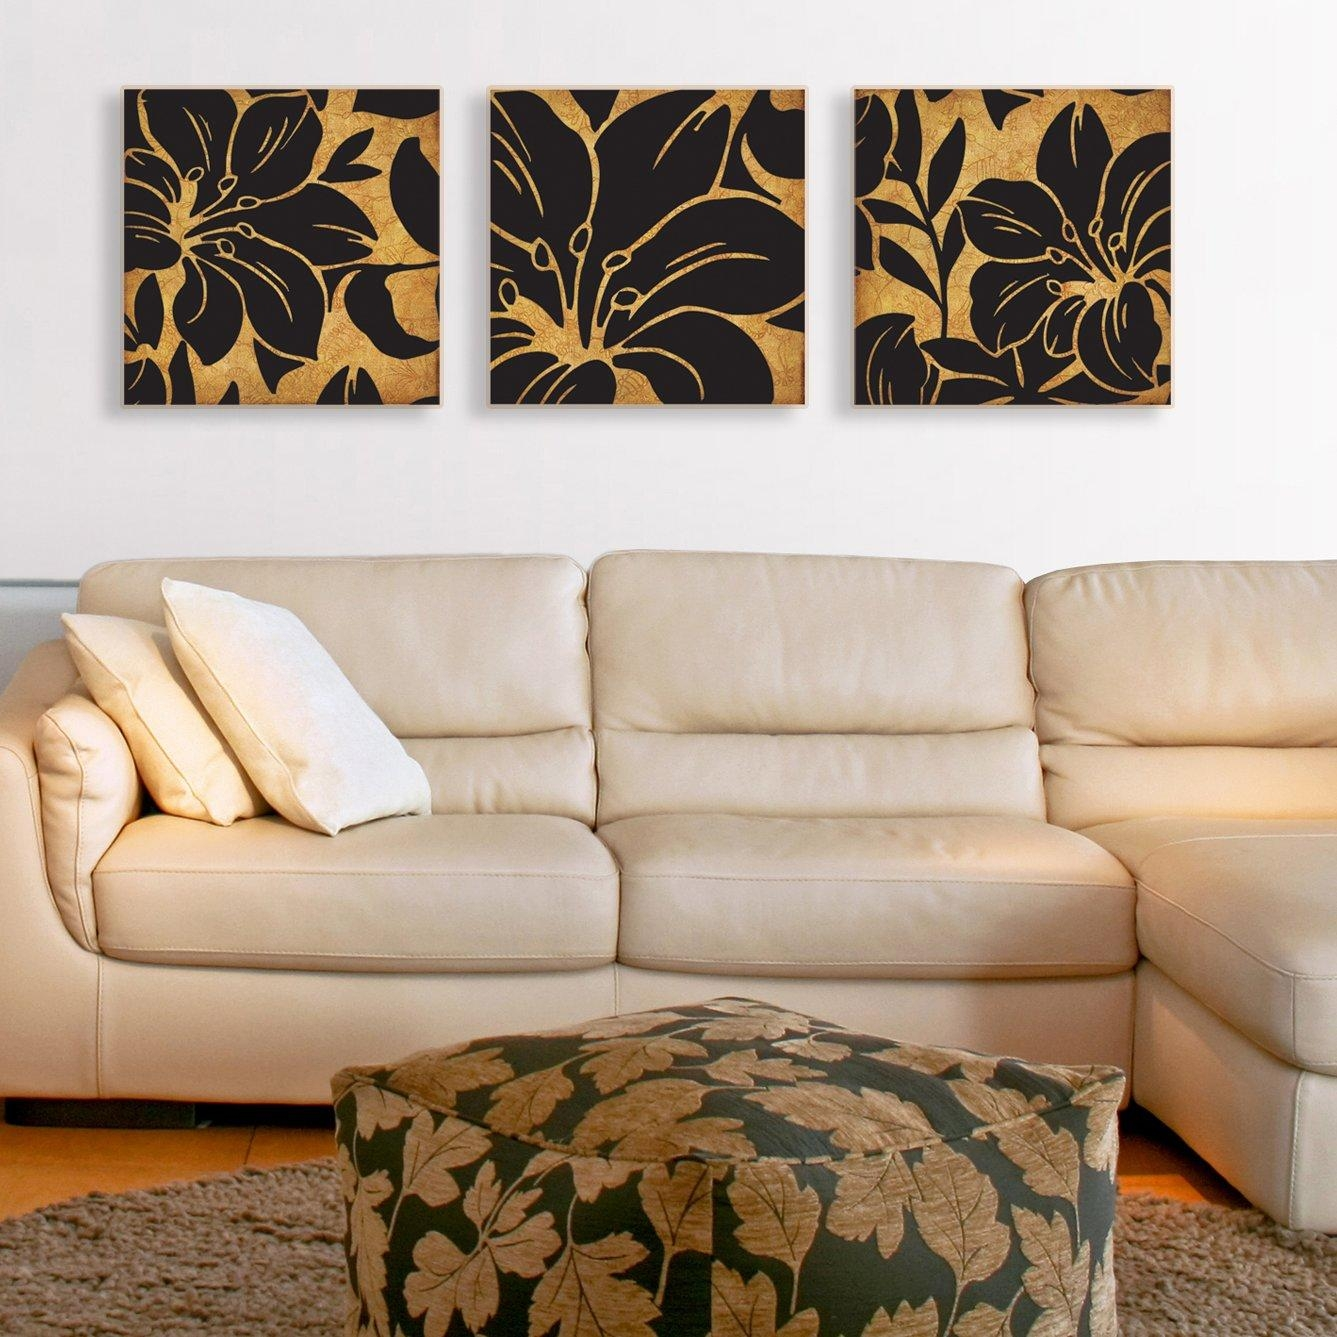 3 Piece Canvas Wall Art | Roselawnlutheran Intended For 3 Piece Canvas Wall Art Sets (View 5 of 14)